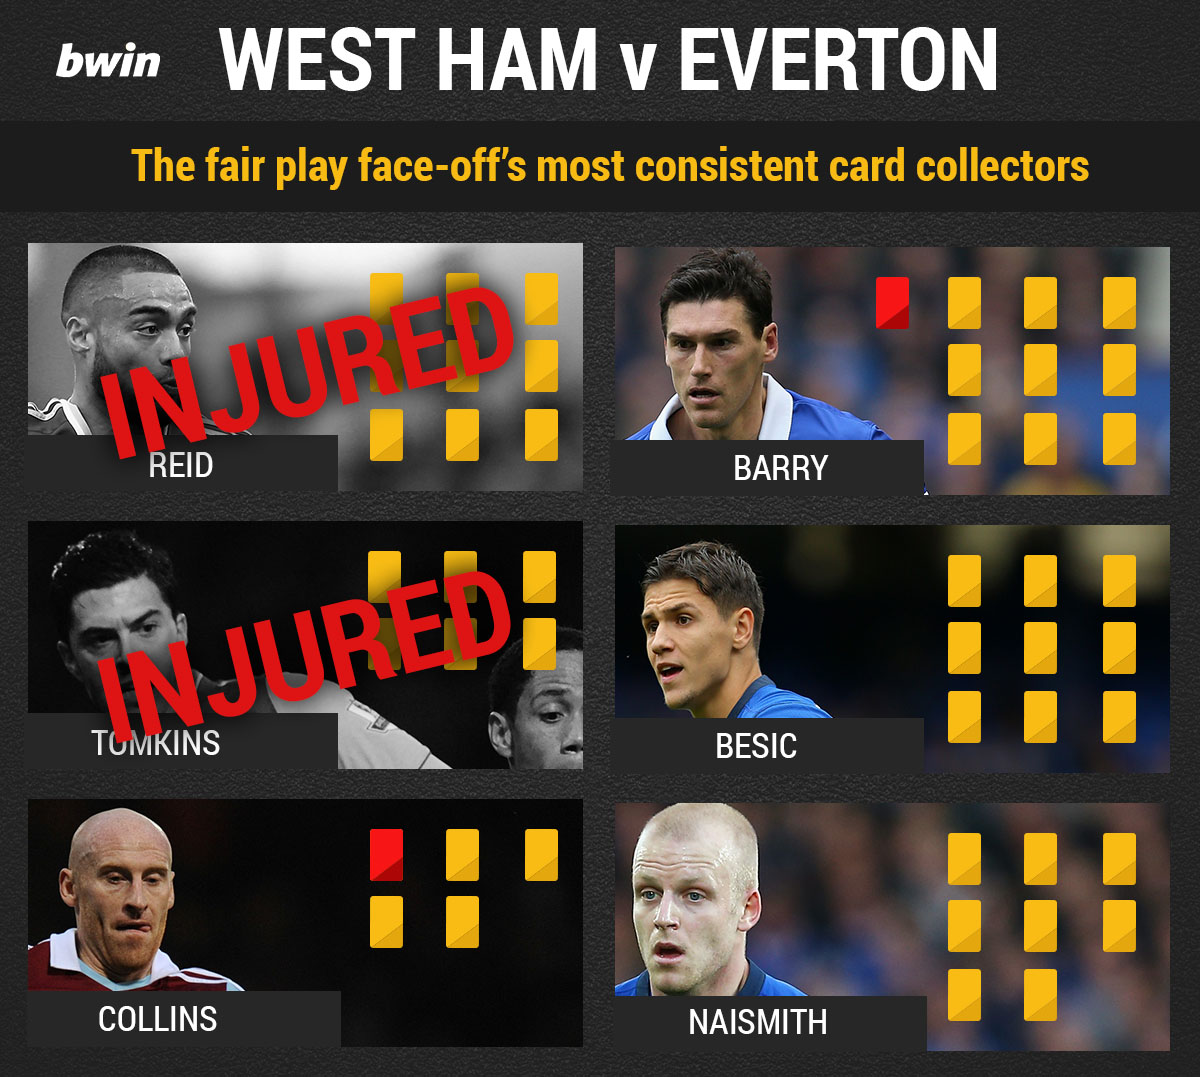 everton-westham-cards-2 copy